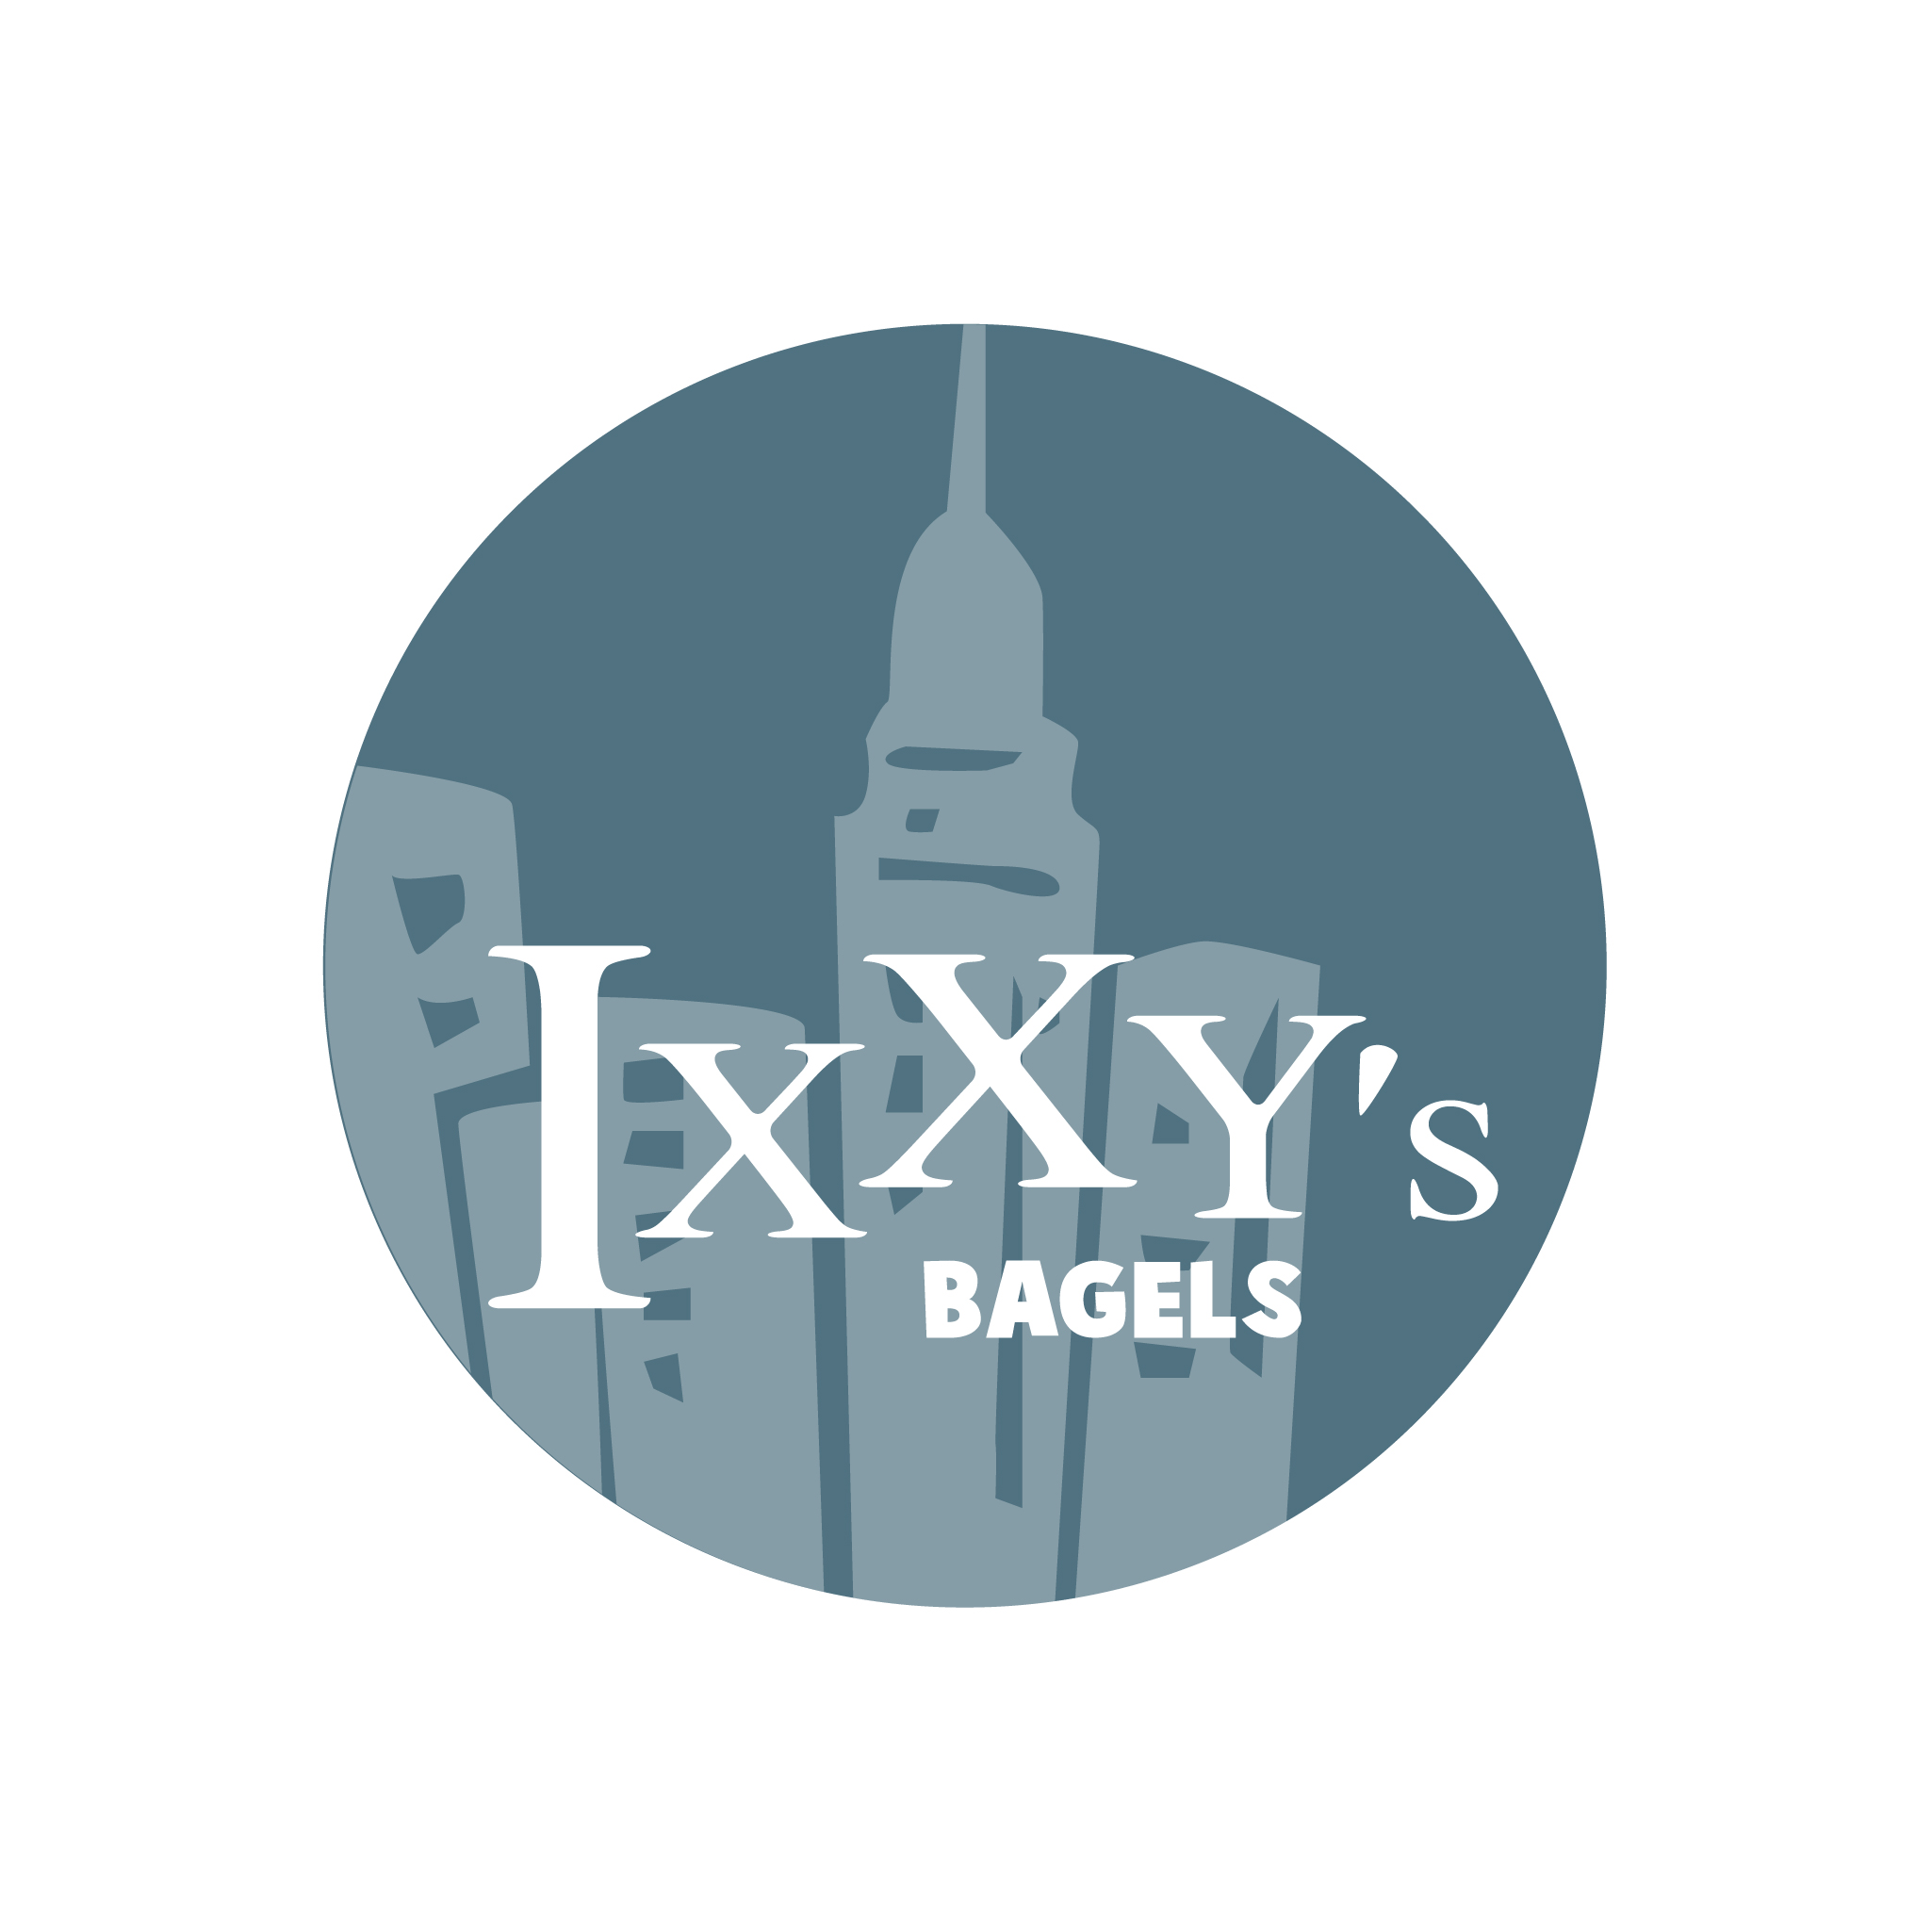 IXXY's Bagels